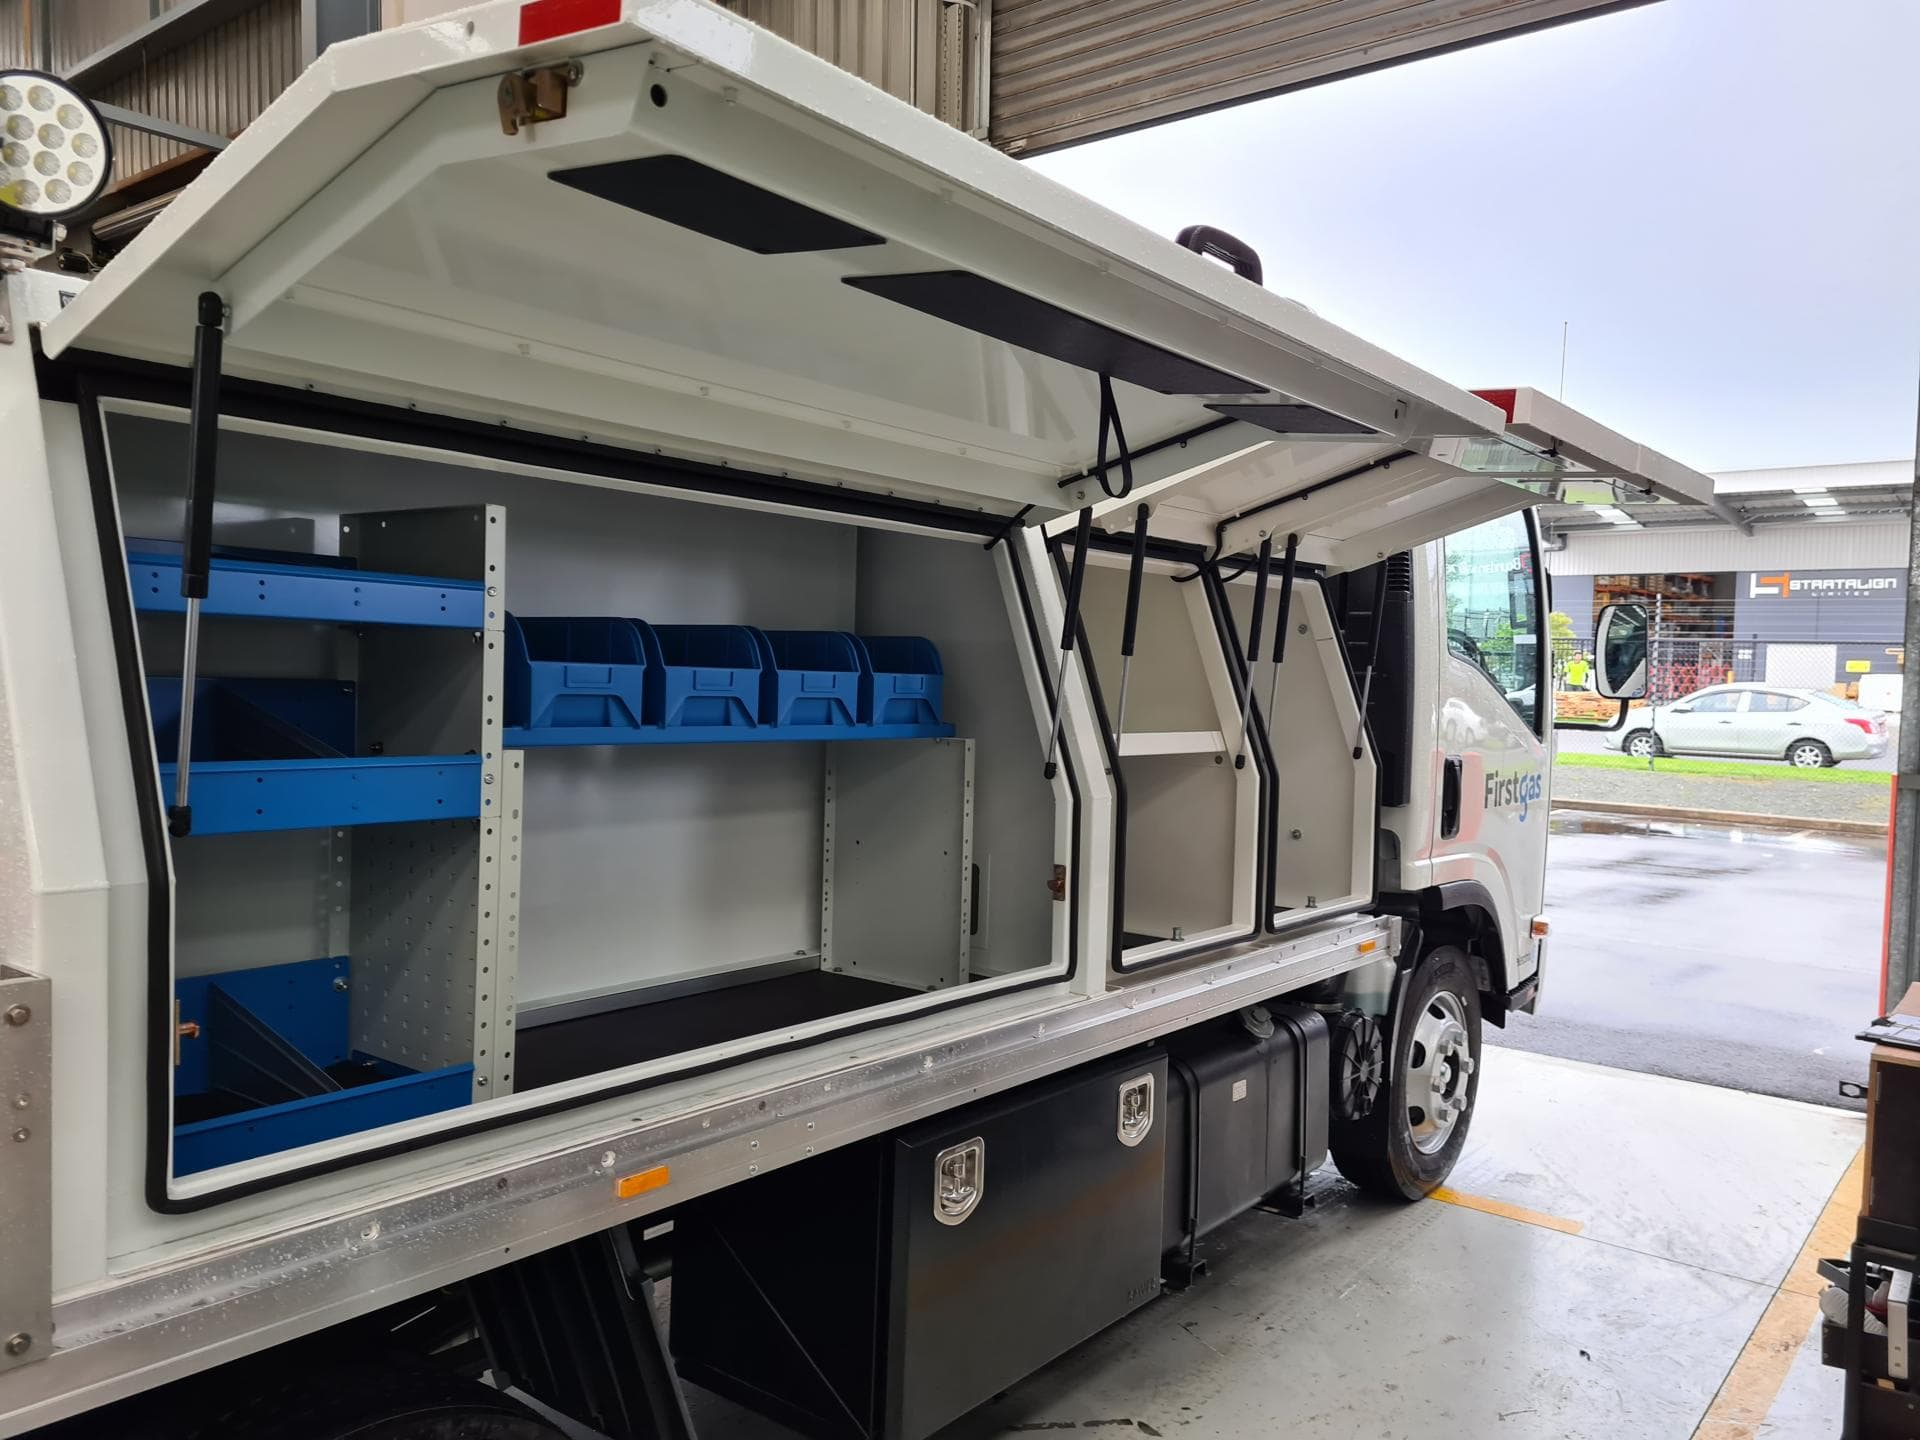 Commercial truck fitout with separate doors and modular storage